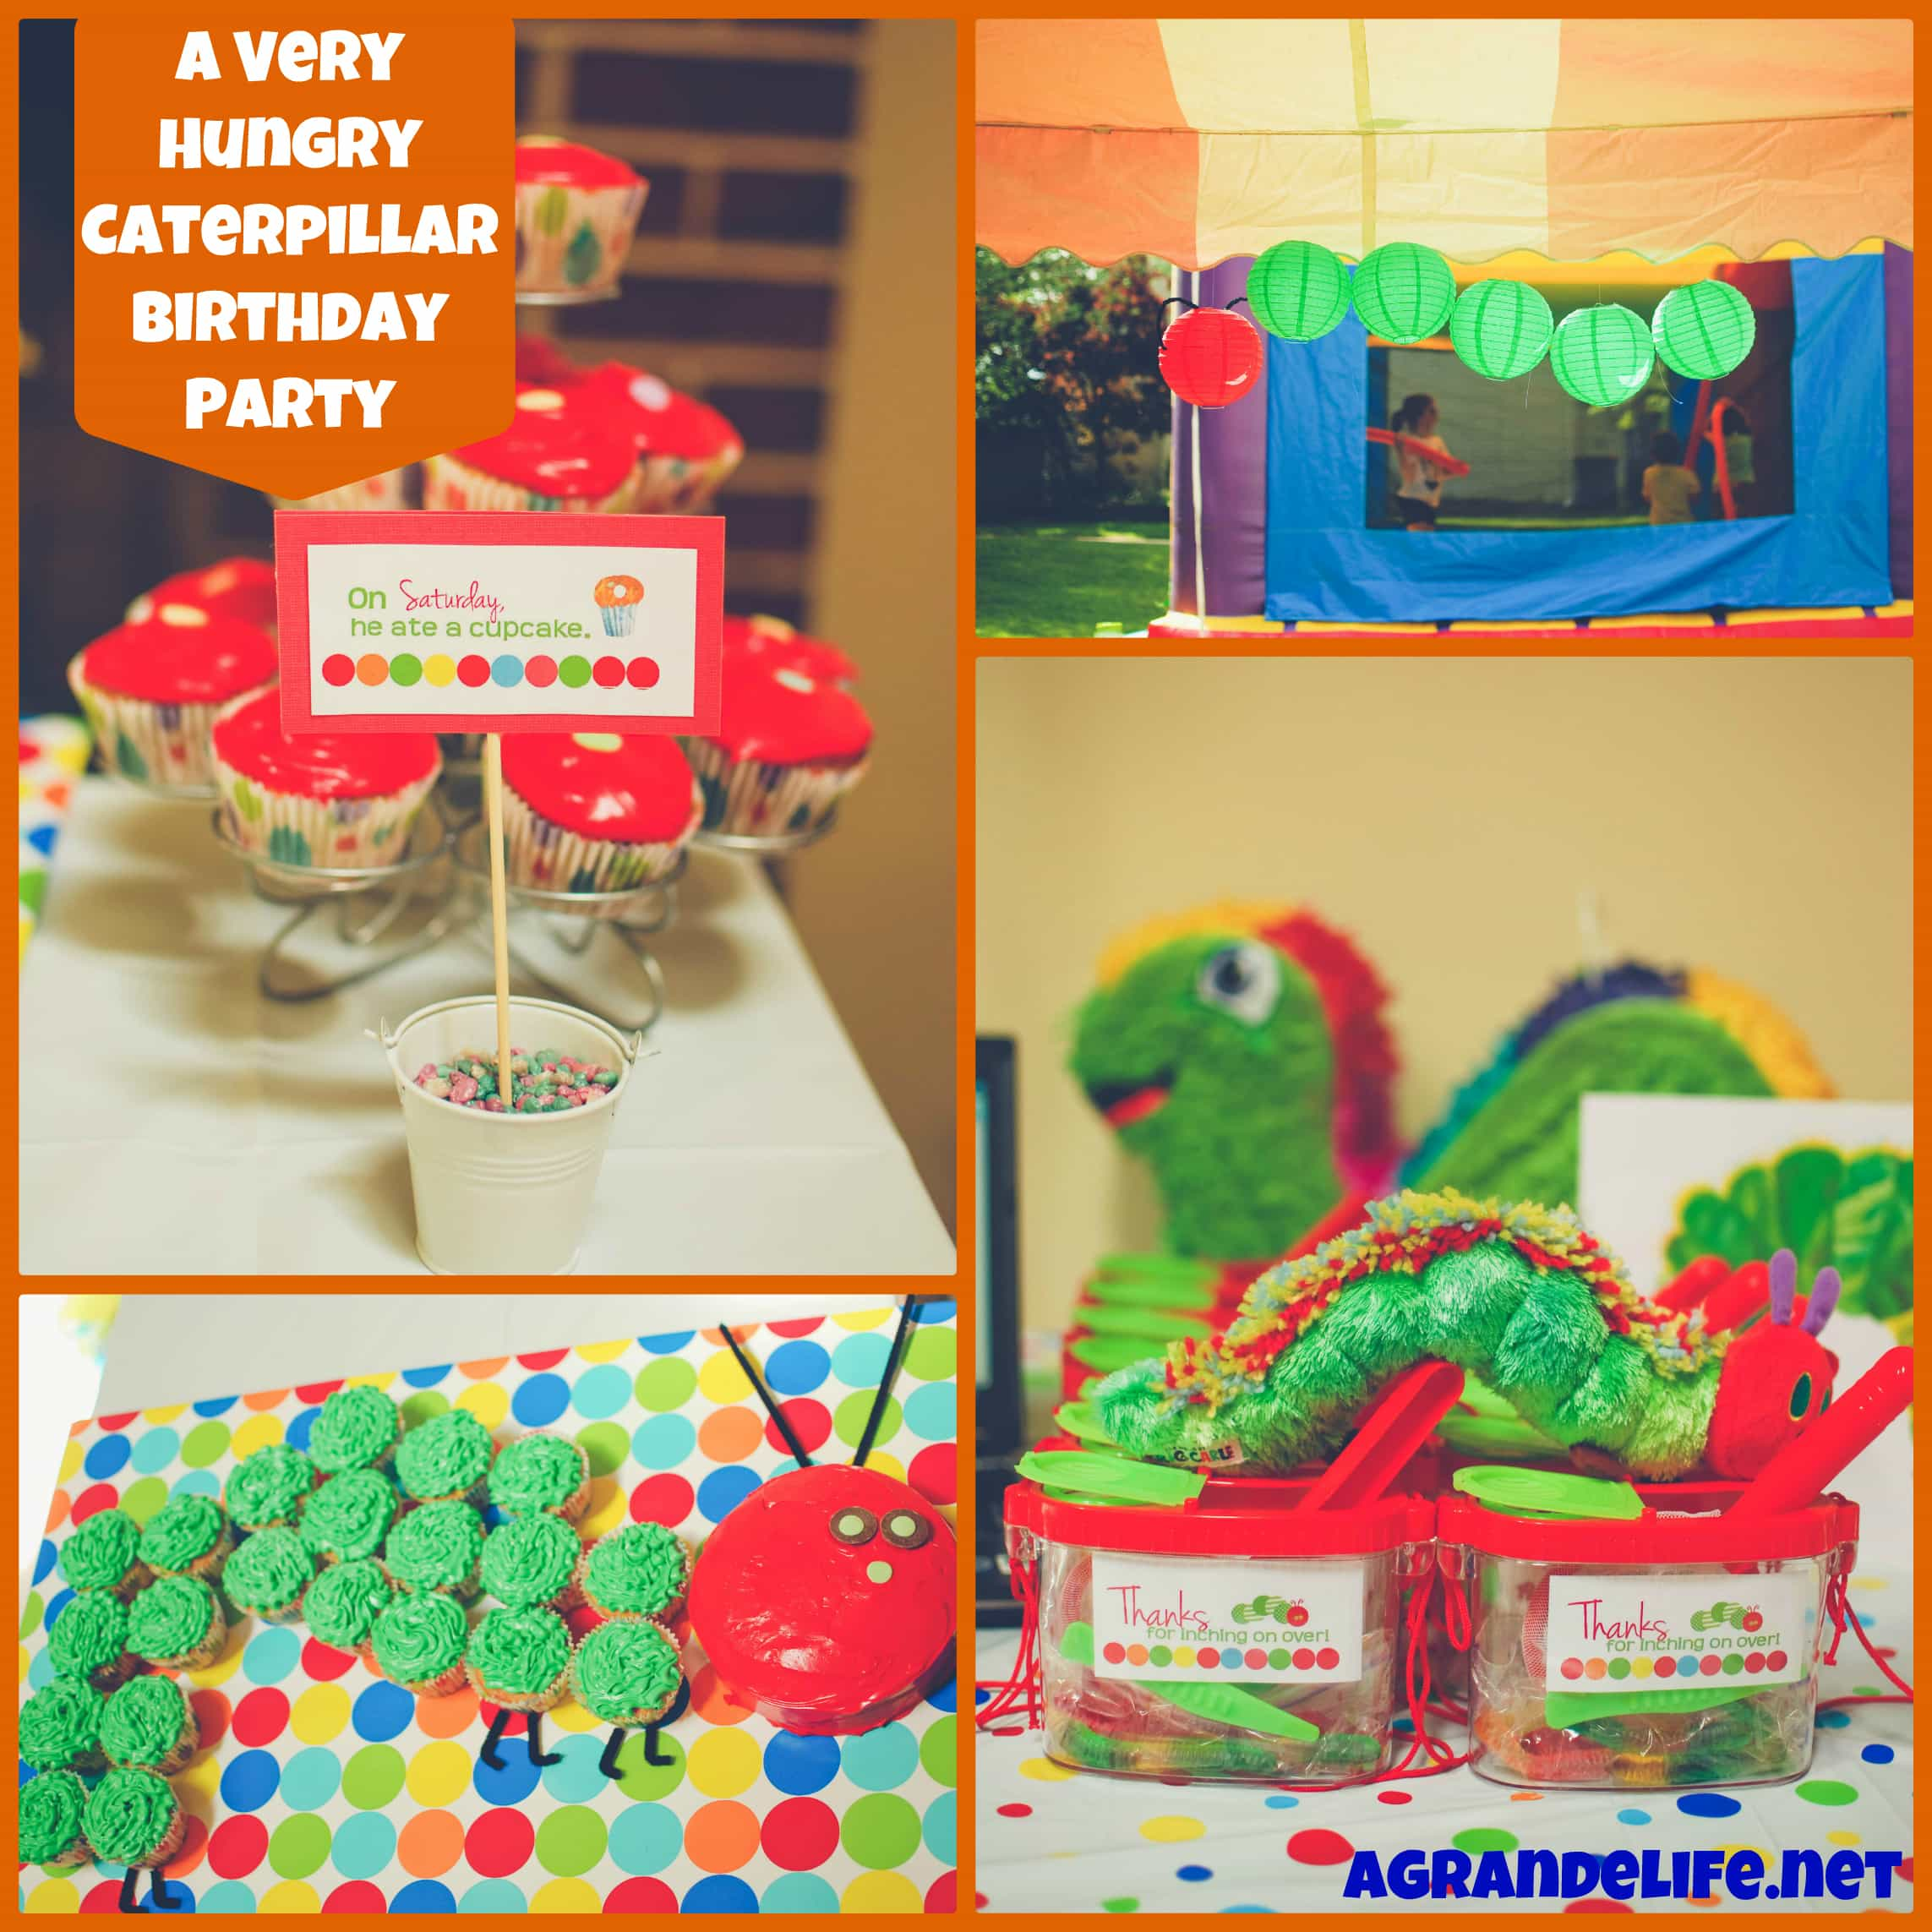 https://agrandelife.net/wp-content/uploads/2012/05/a-very-hungry-caterpillar-birthday-party.jpg